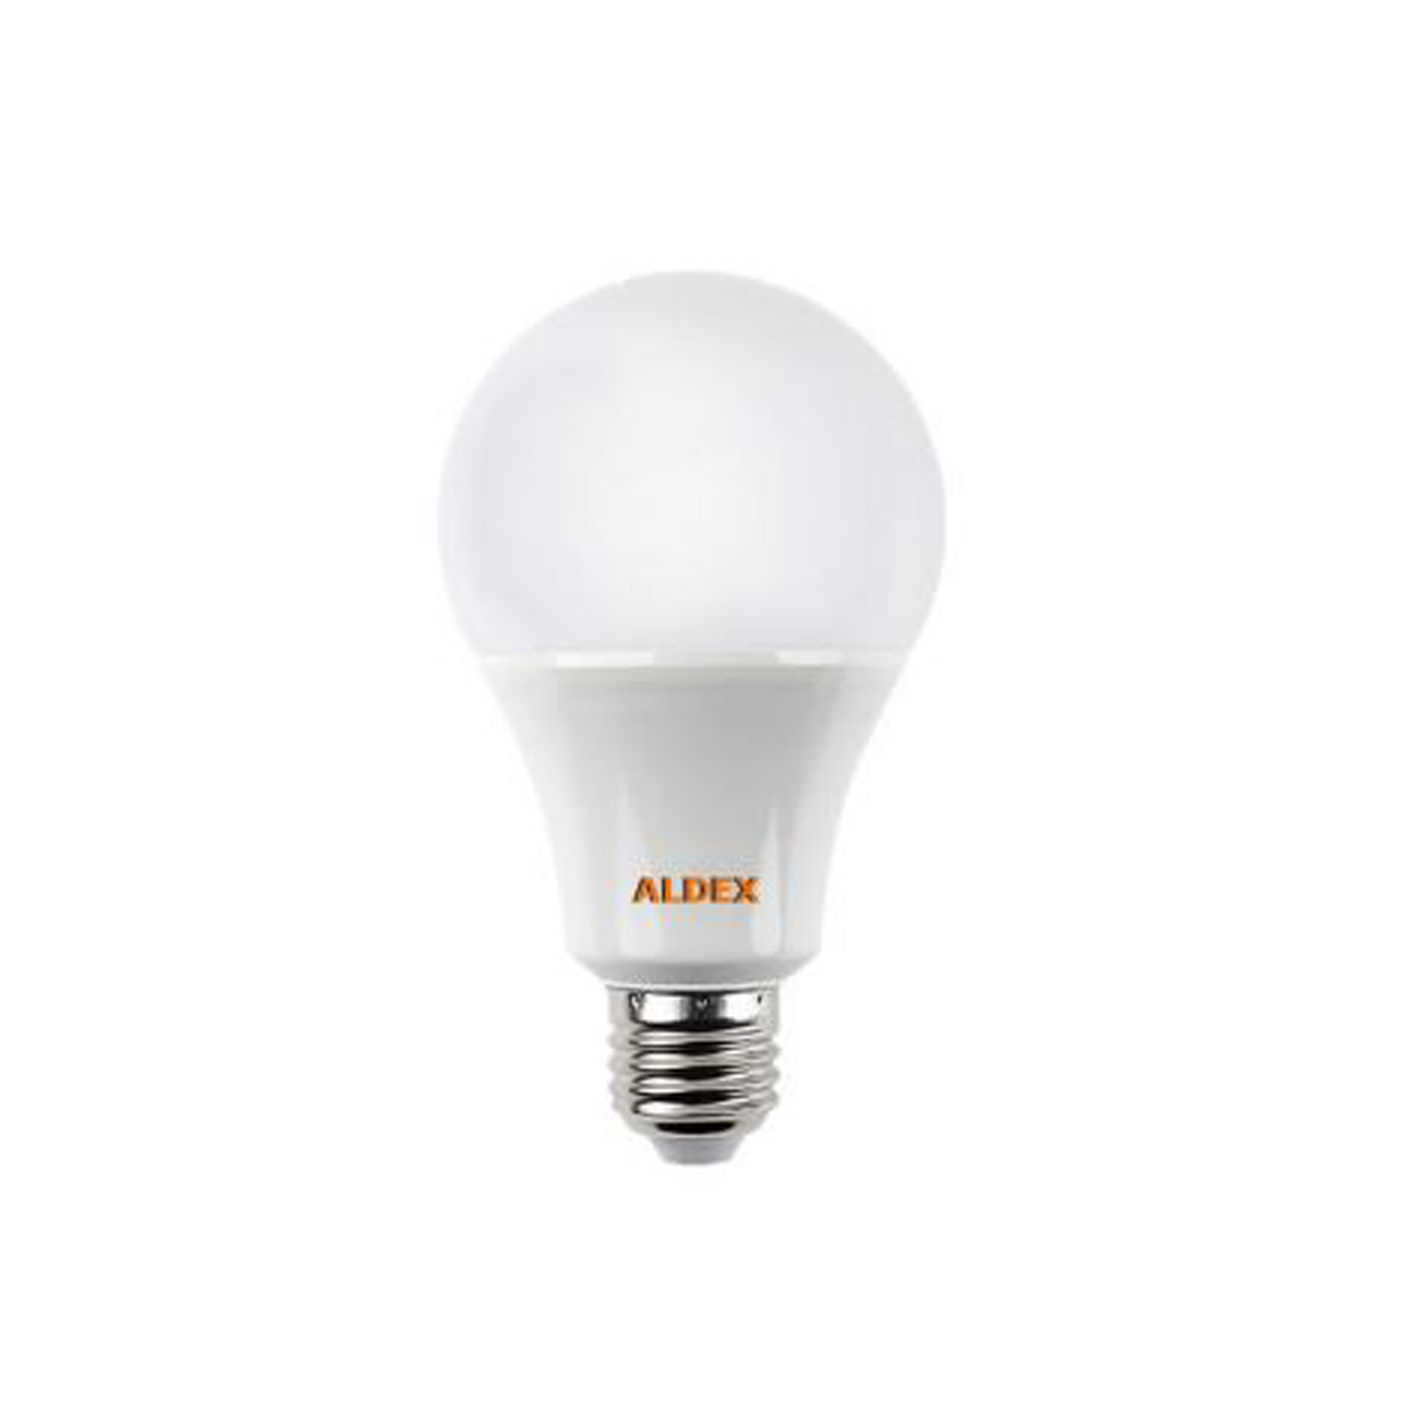 Aldex 12W 6500K E27 Led Ampul